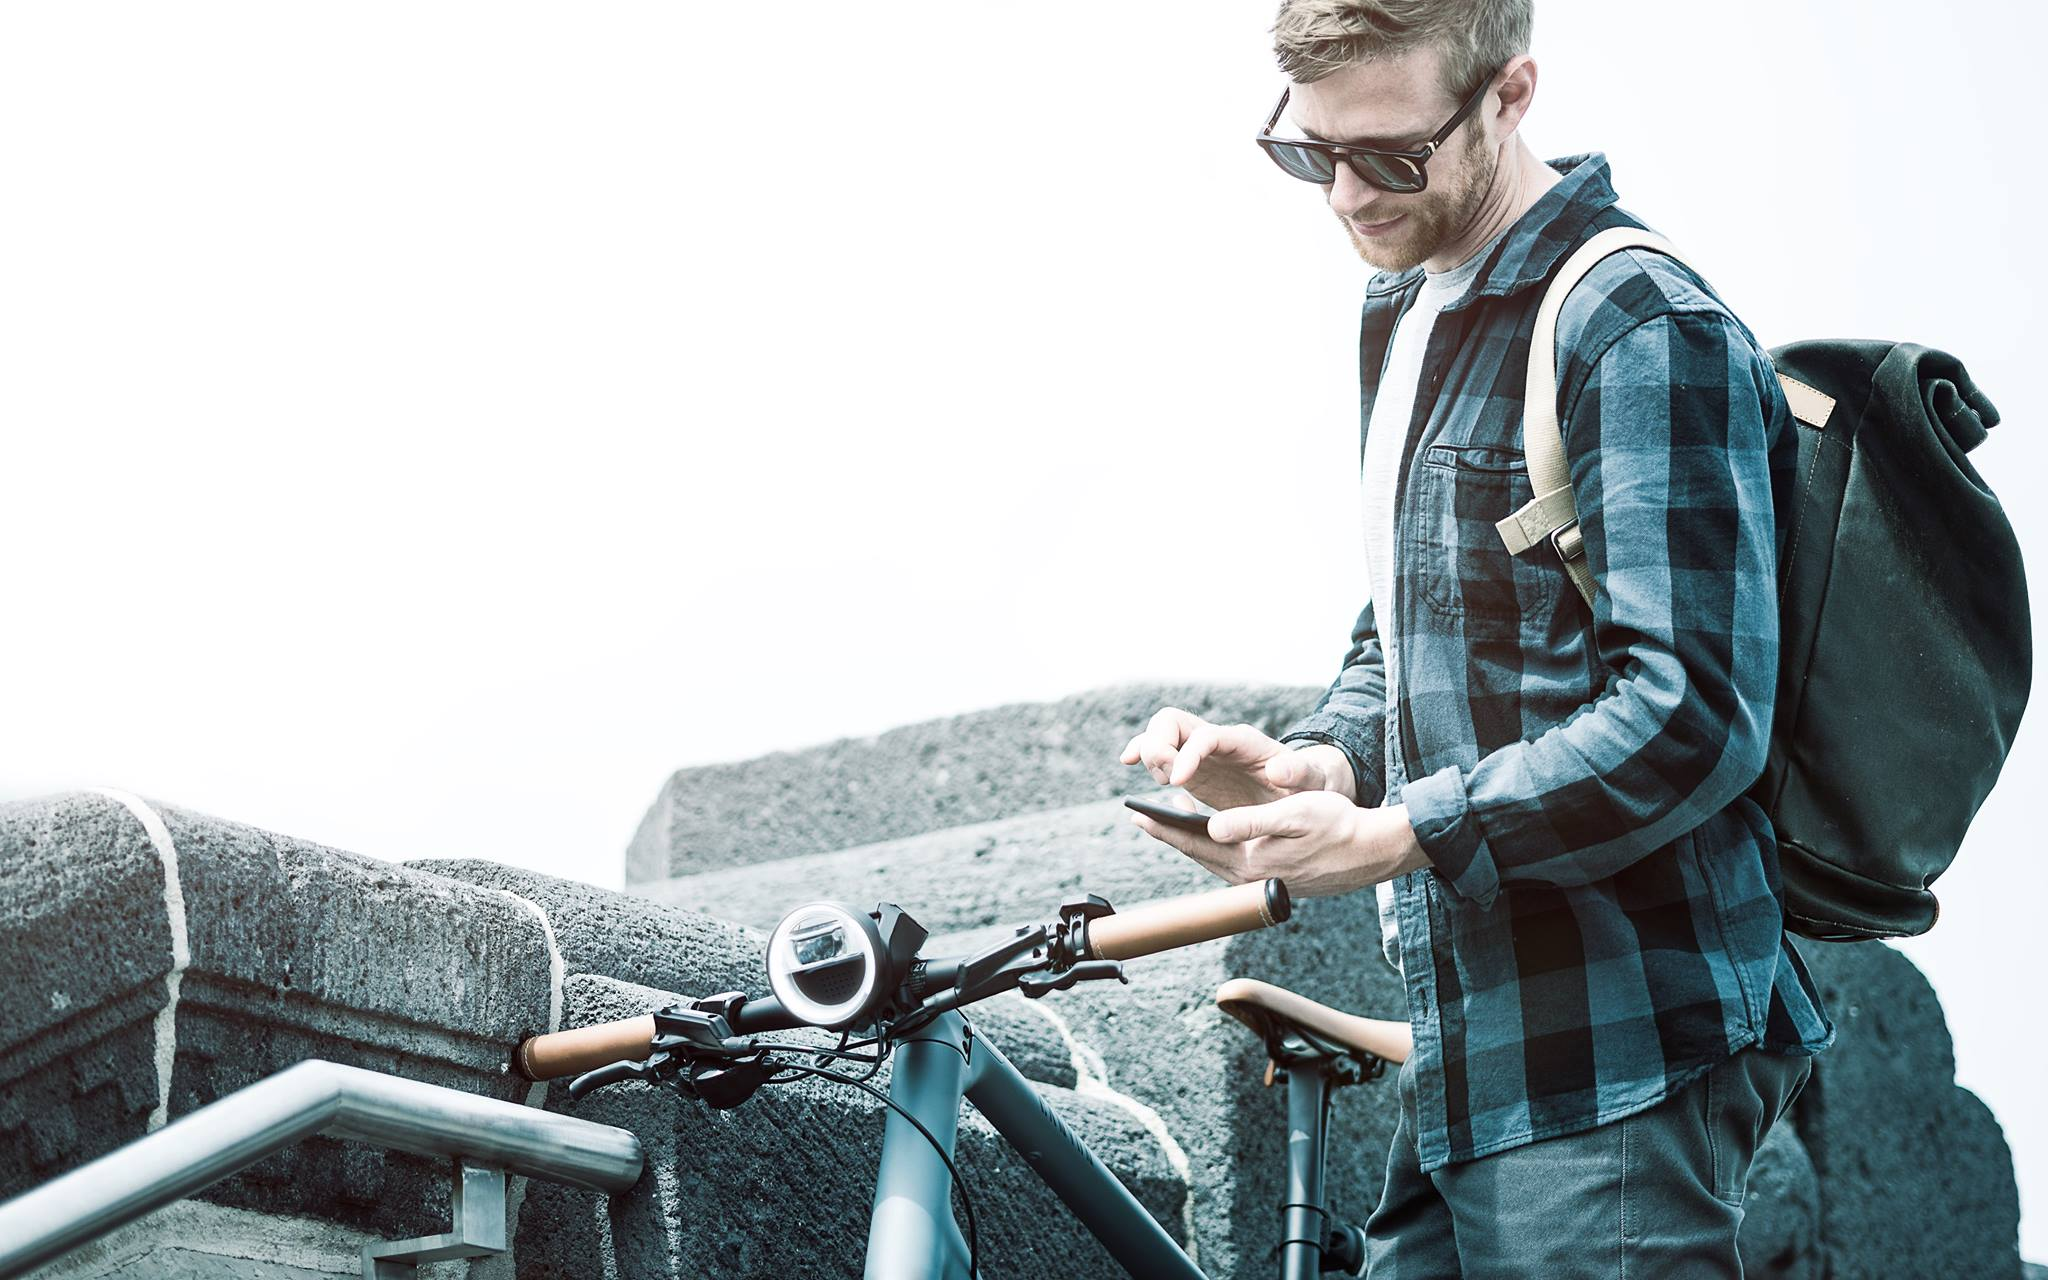 COBI – Smart Connected Biking System